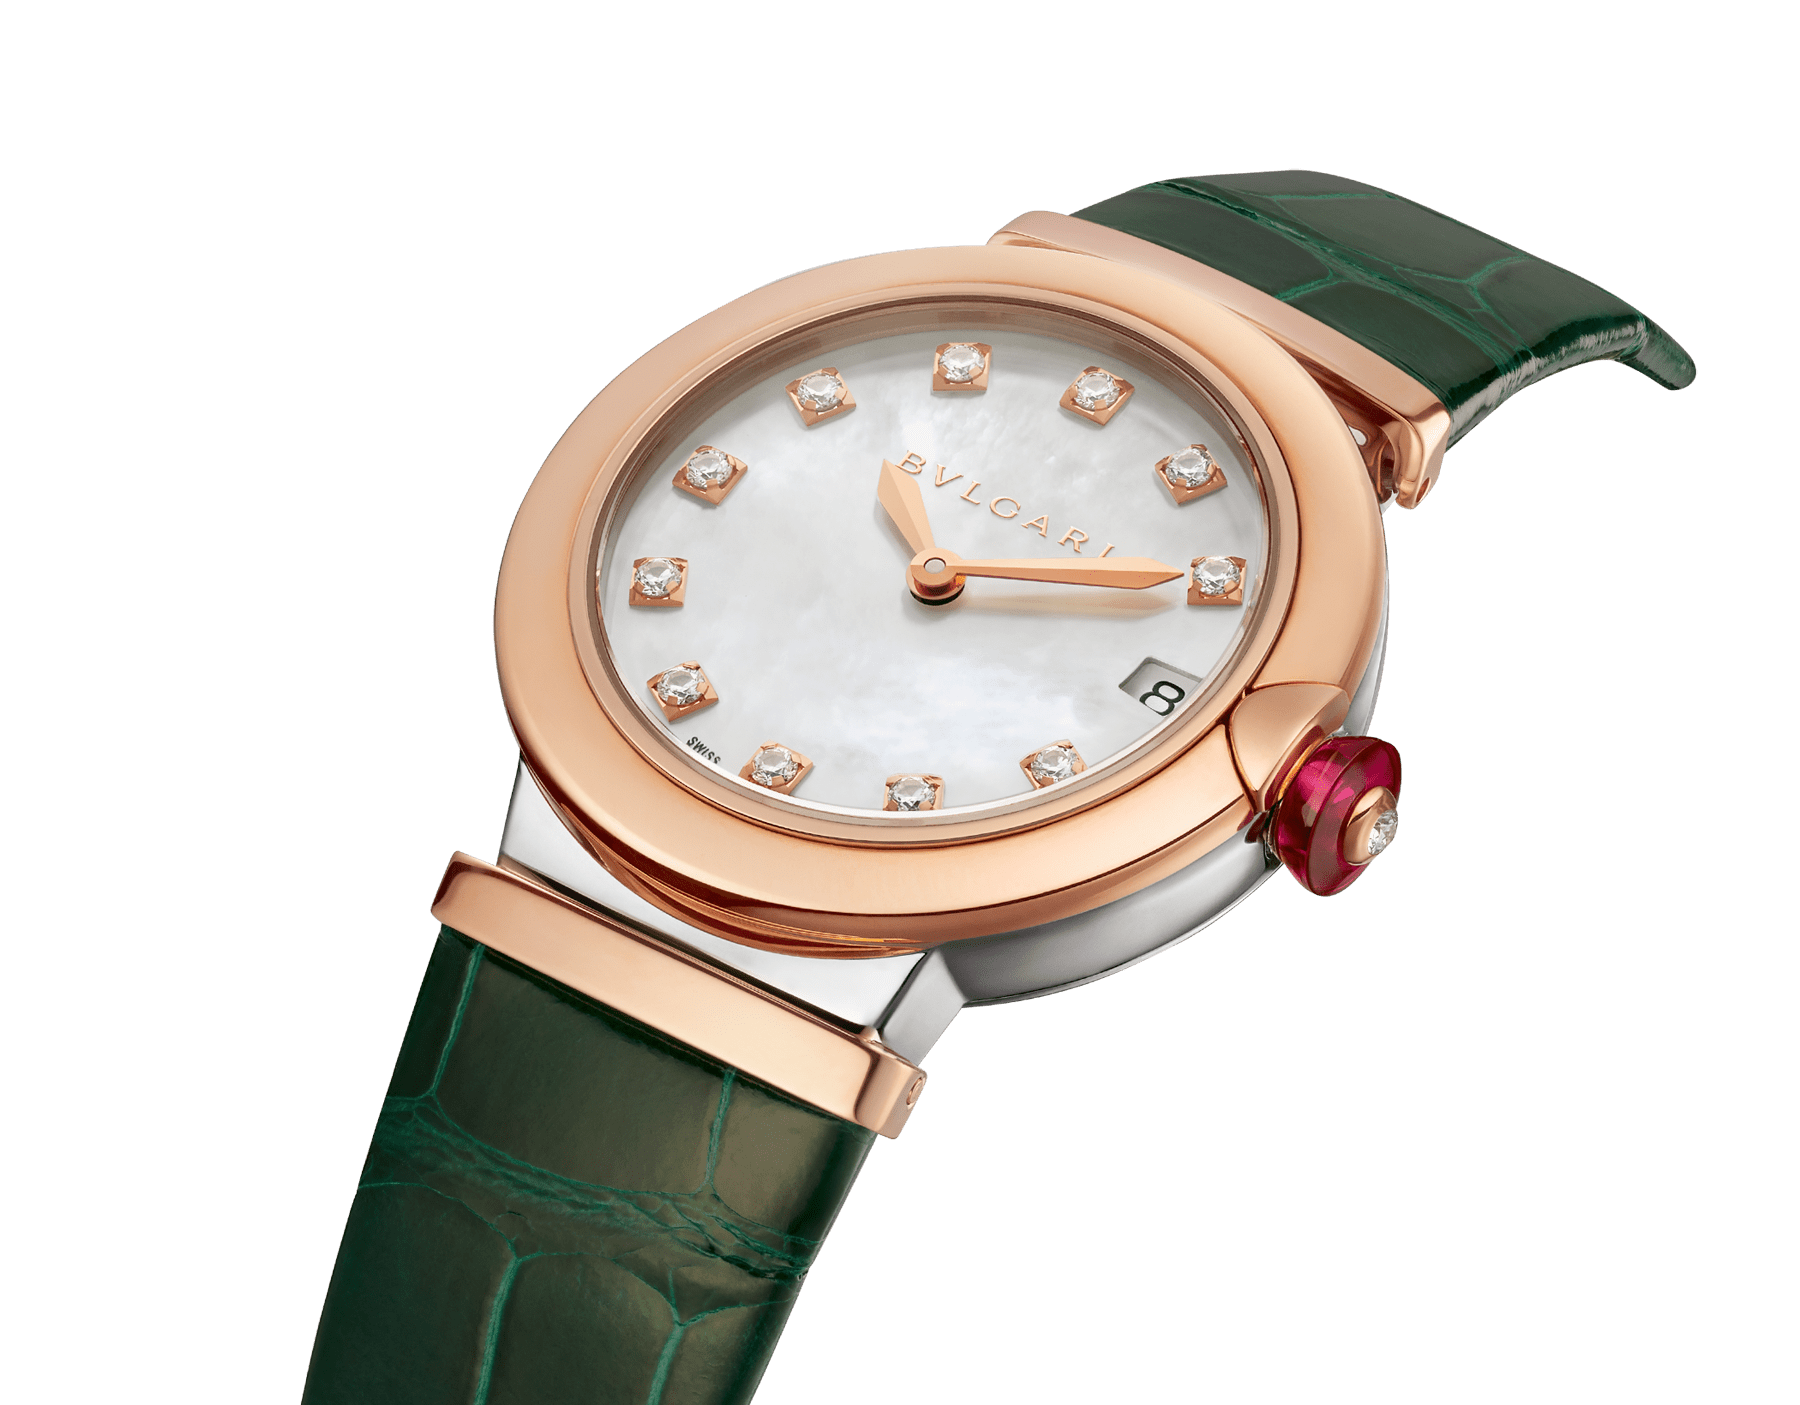 LVCEA watch with 18 kt rose gold and stainless steel case, white mother-of-pearl dial set with diamond indexes, date aperture and green alligator bracelet. 102640 image 2